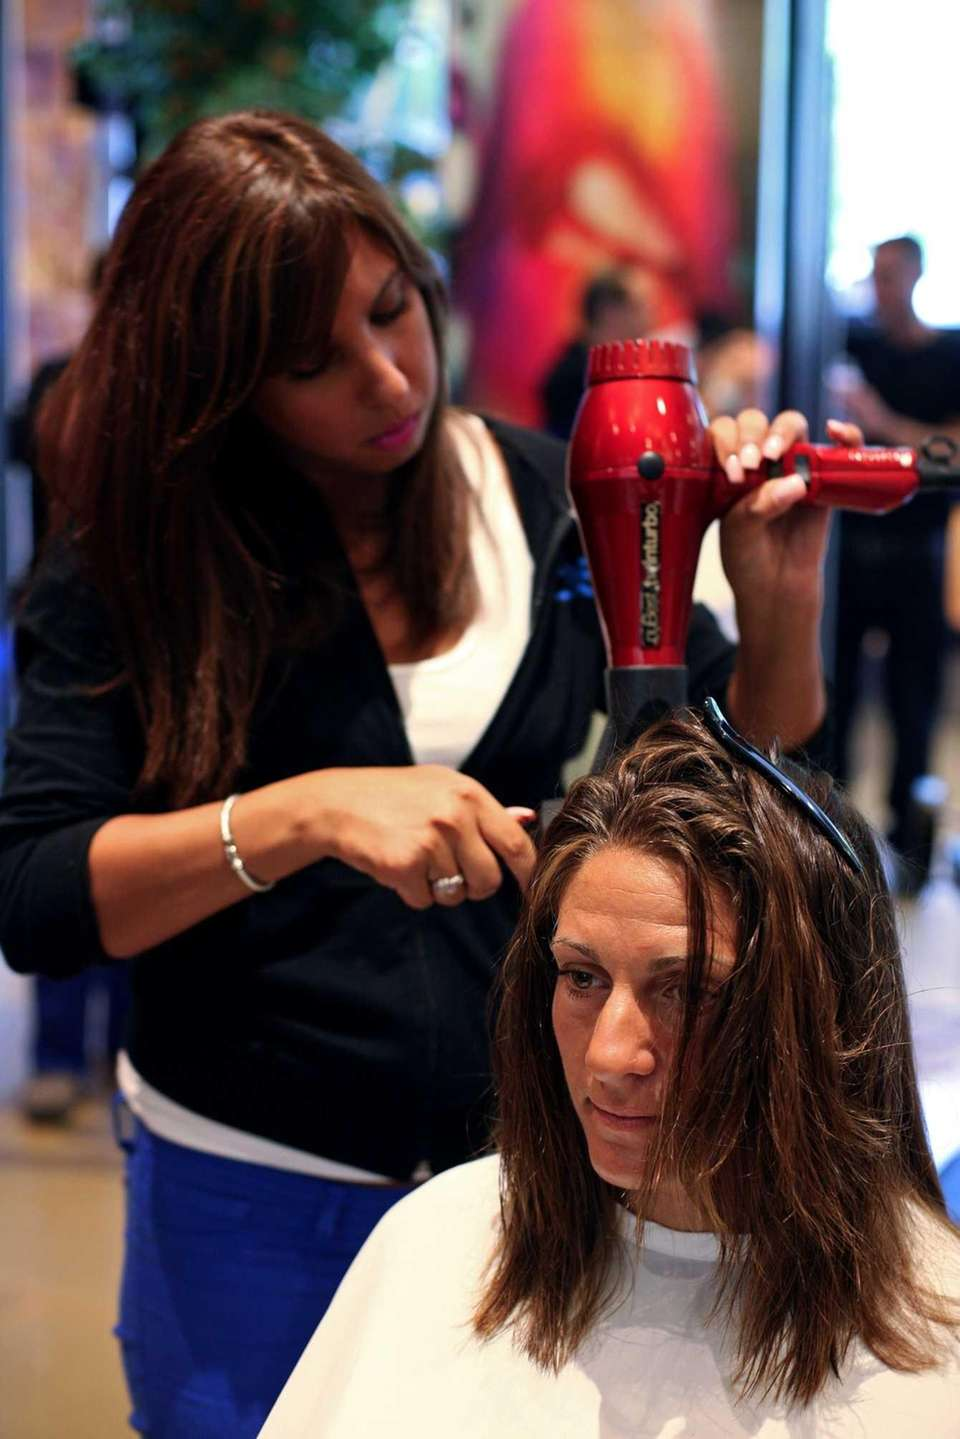 Michelle Crennan gets a cut. (Aug. 3, 2013)